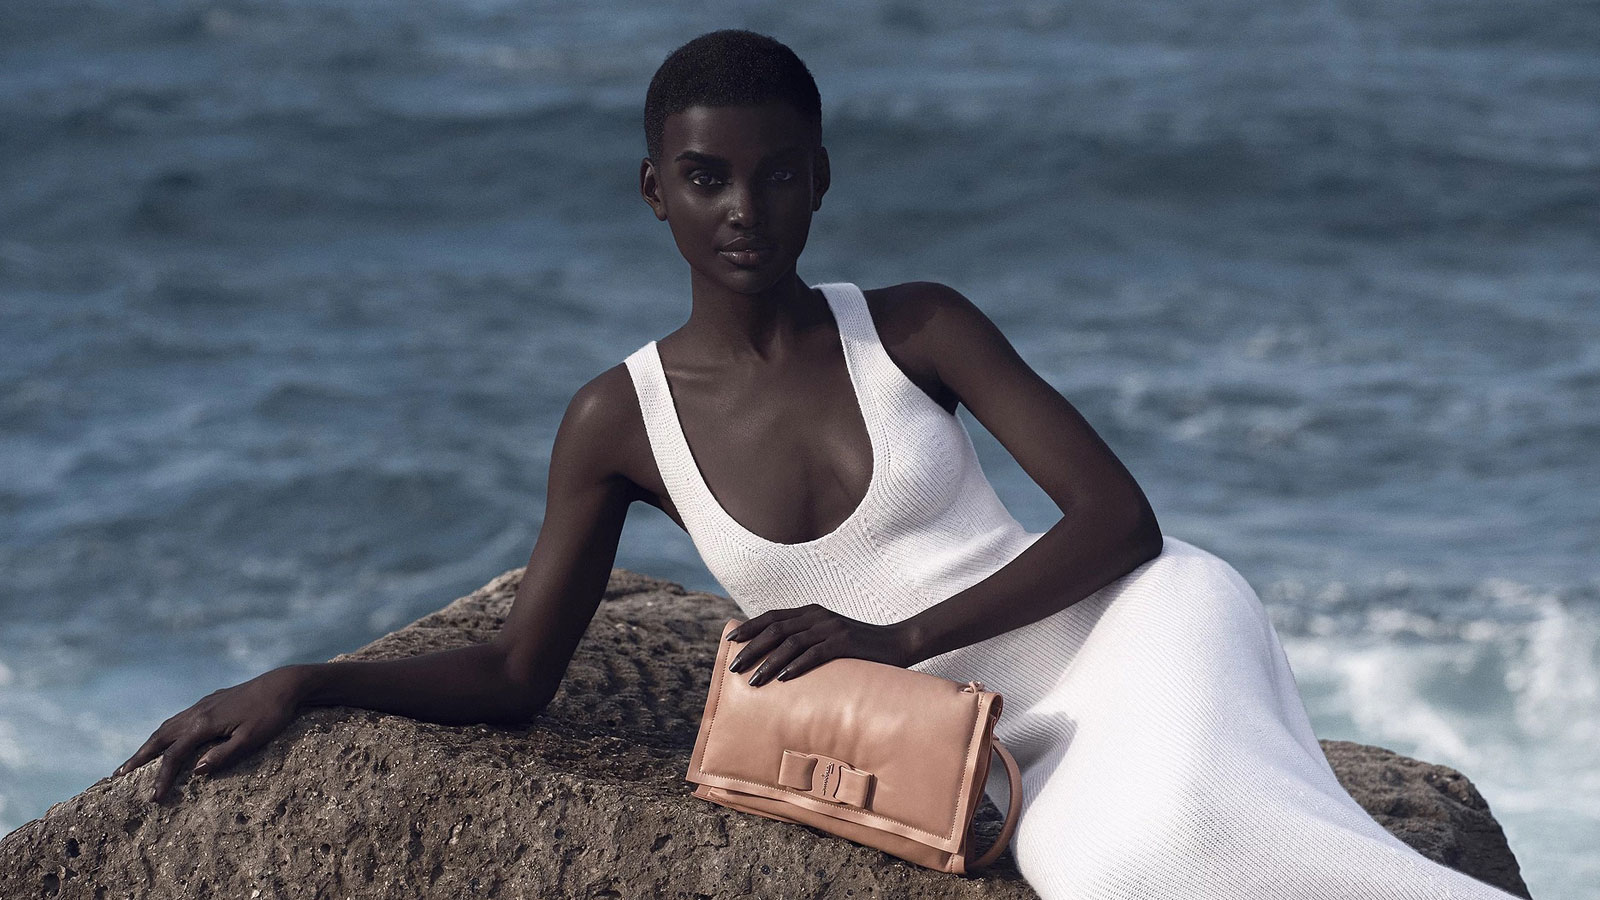 3D model posing next to a beach with a bag wearing a white dress